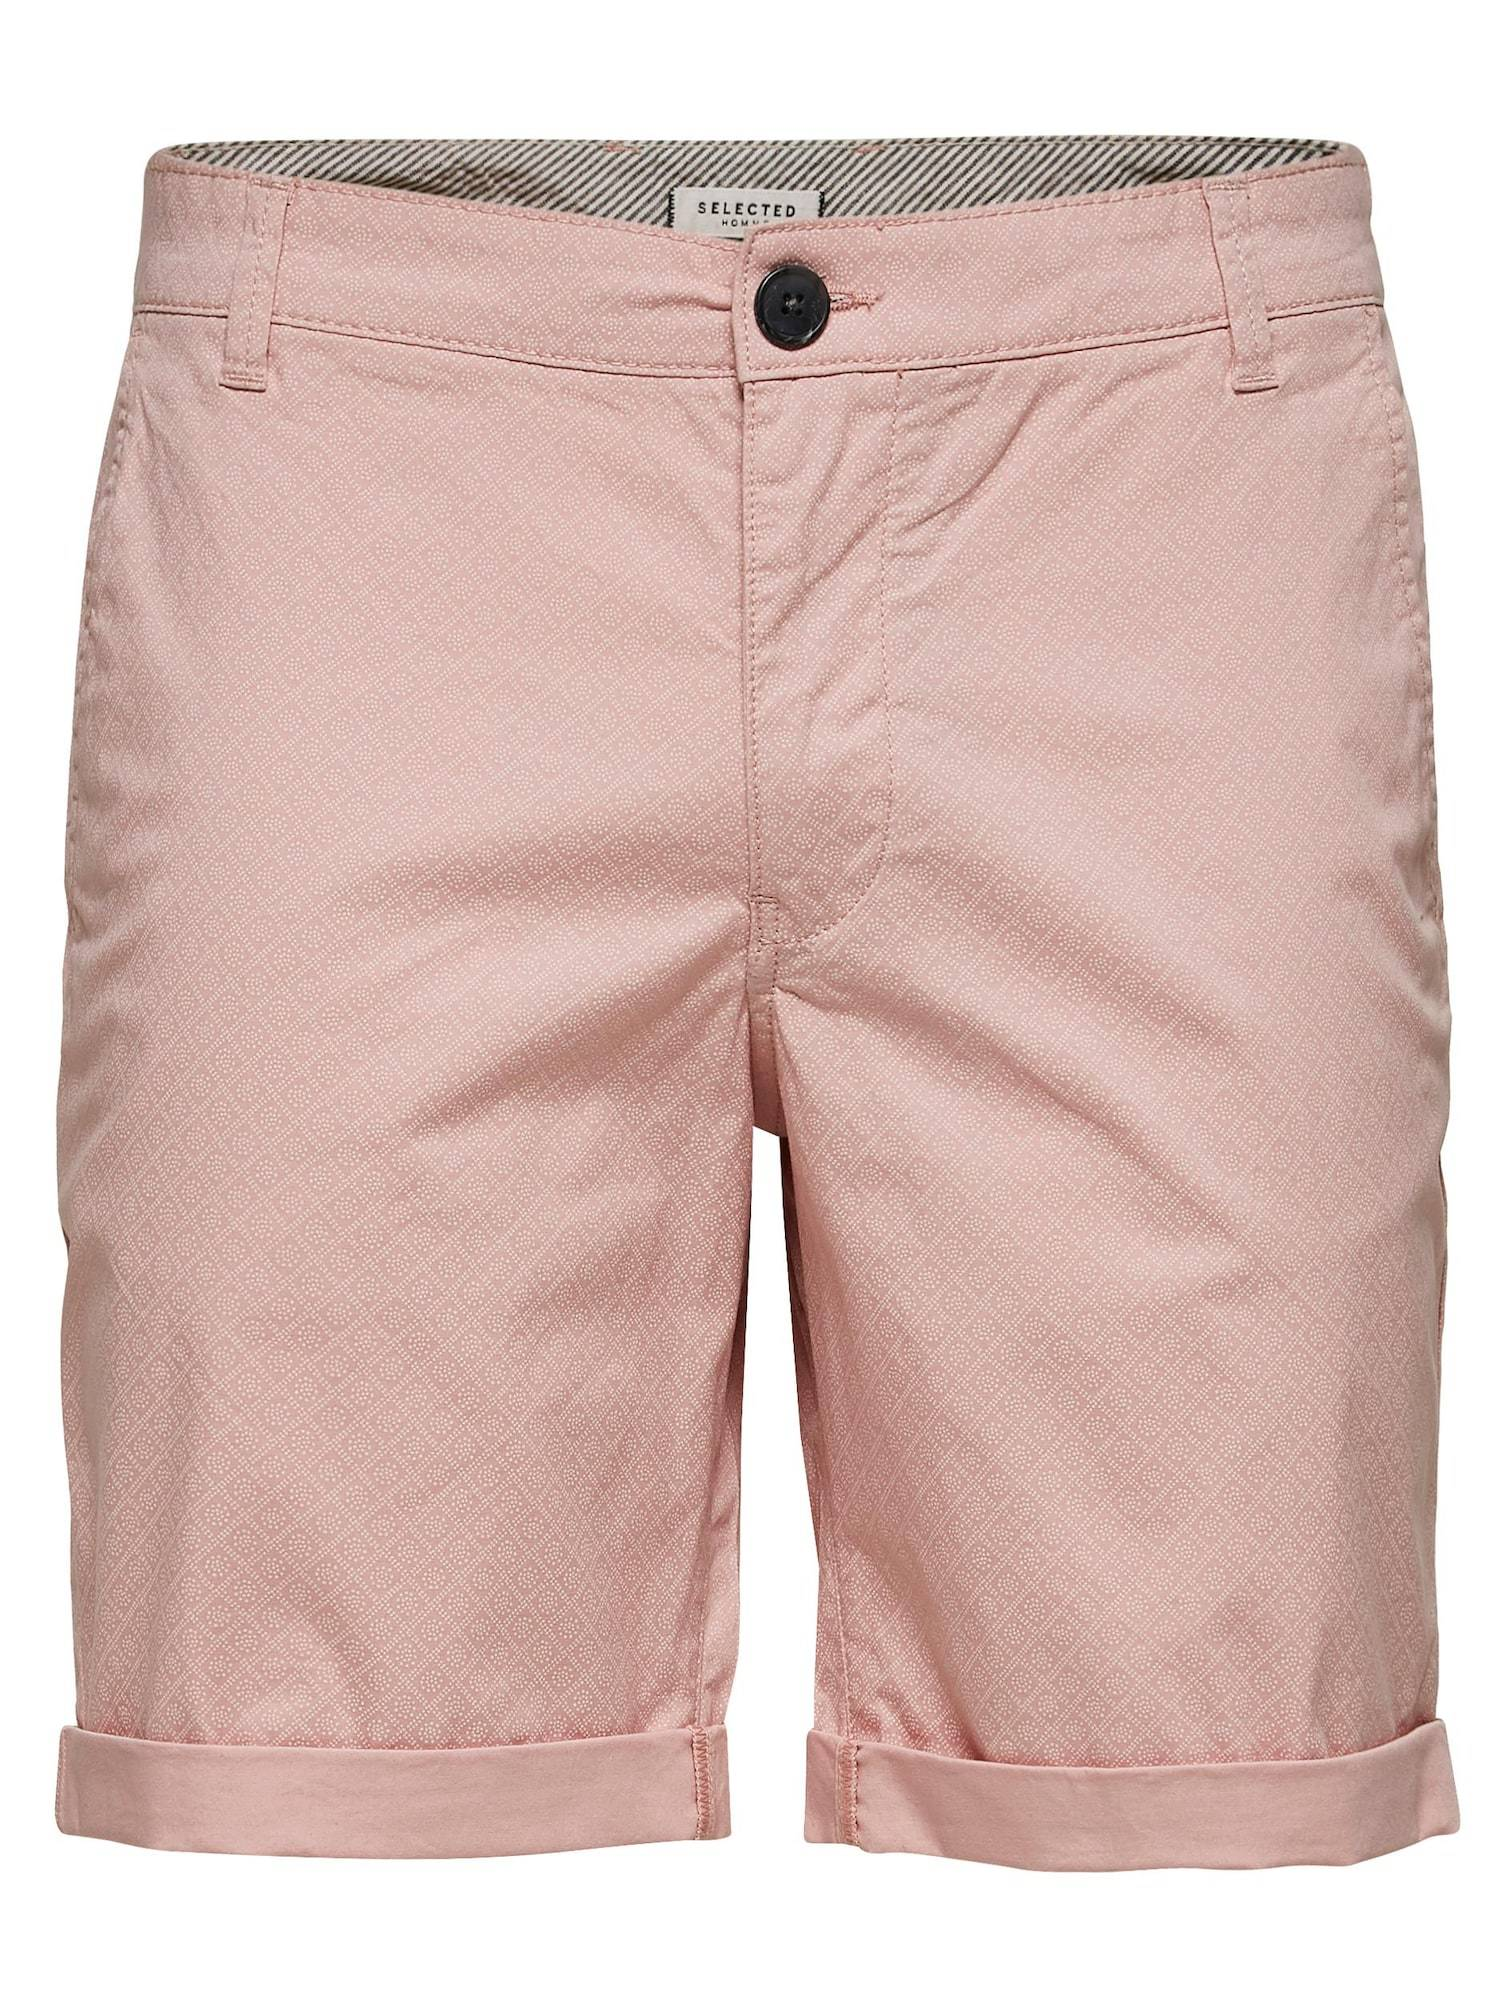 SELECTED HOMME Pantalon chino 'Paris'  - Rose - Taille: S - male